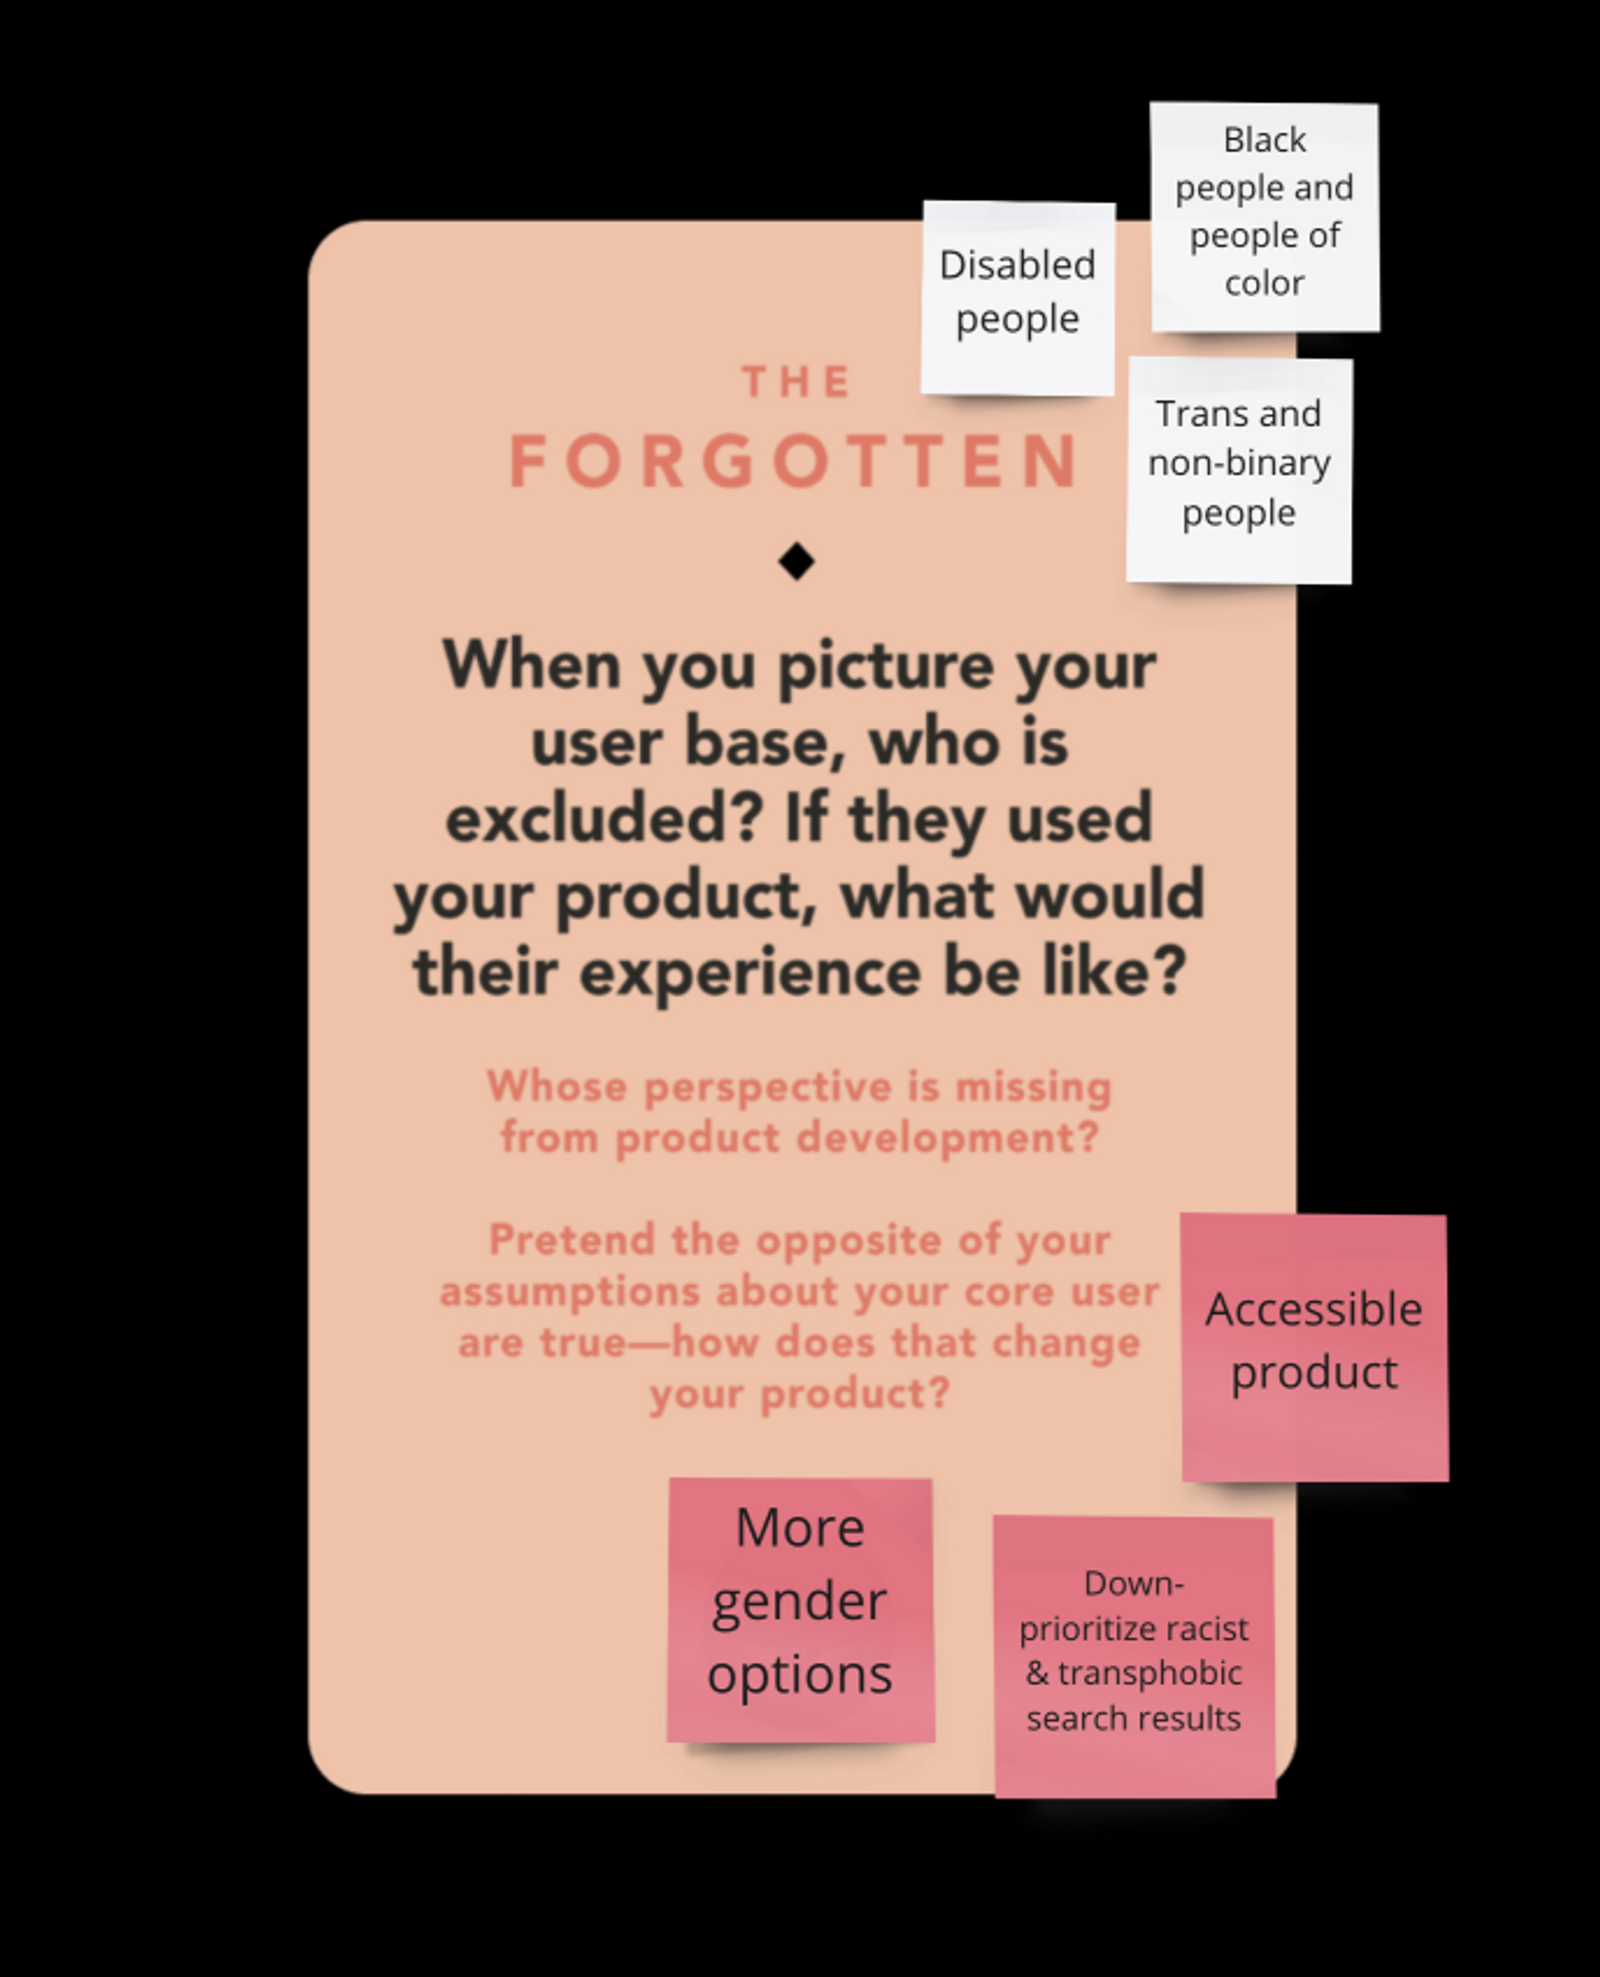 answers to the forgotten card about who is excluded and how that changes things: